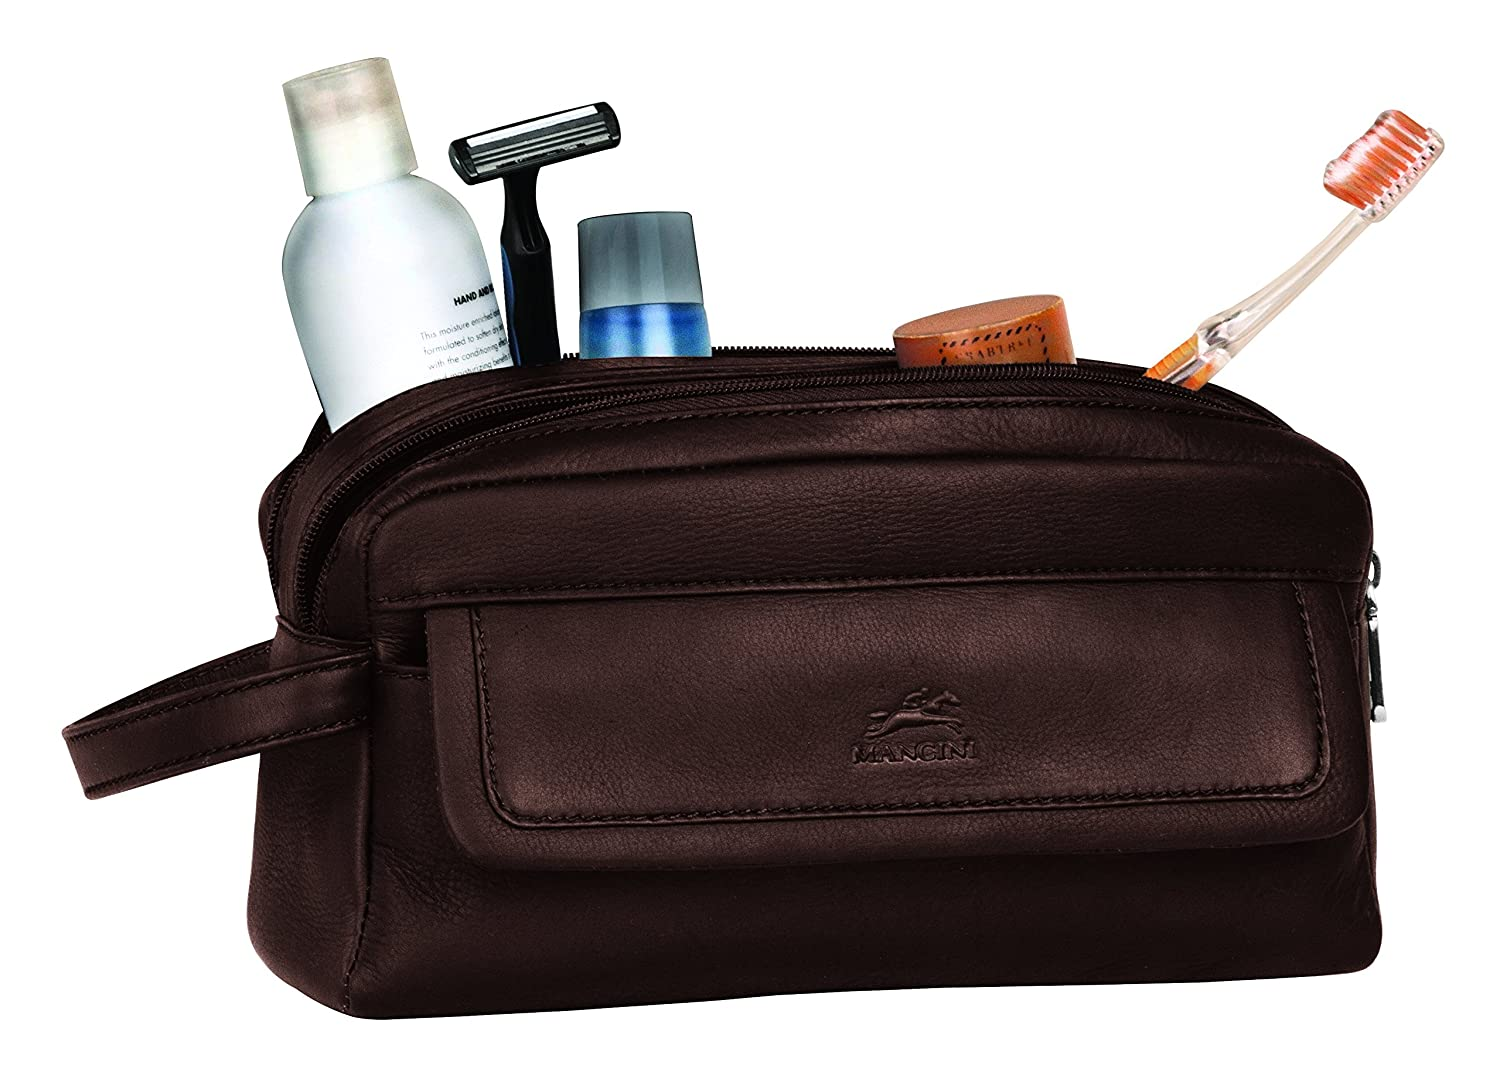 Mancini Leather Goods Colombian Leather Double Compartment Toiletry Kit 98201-bk